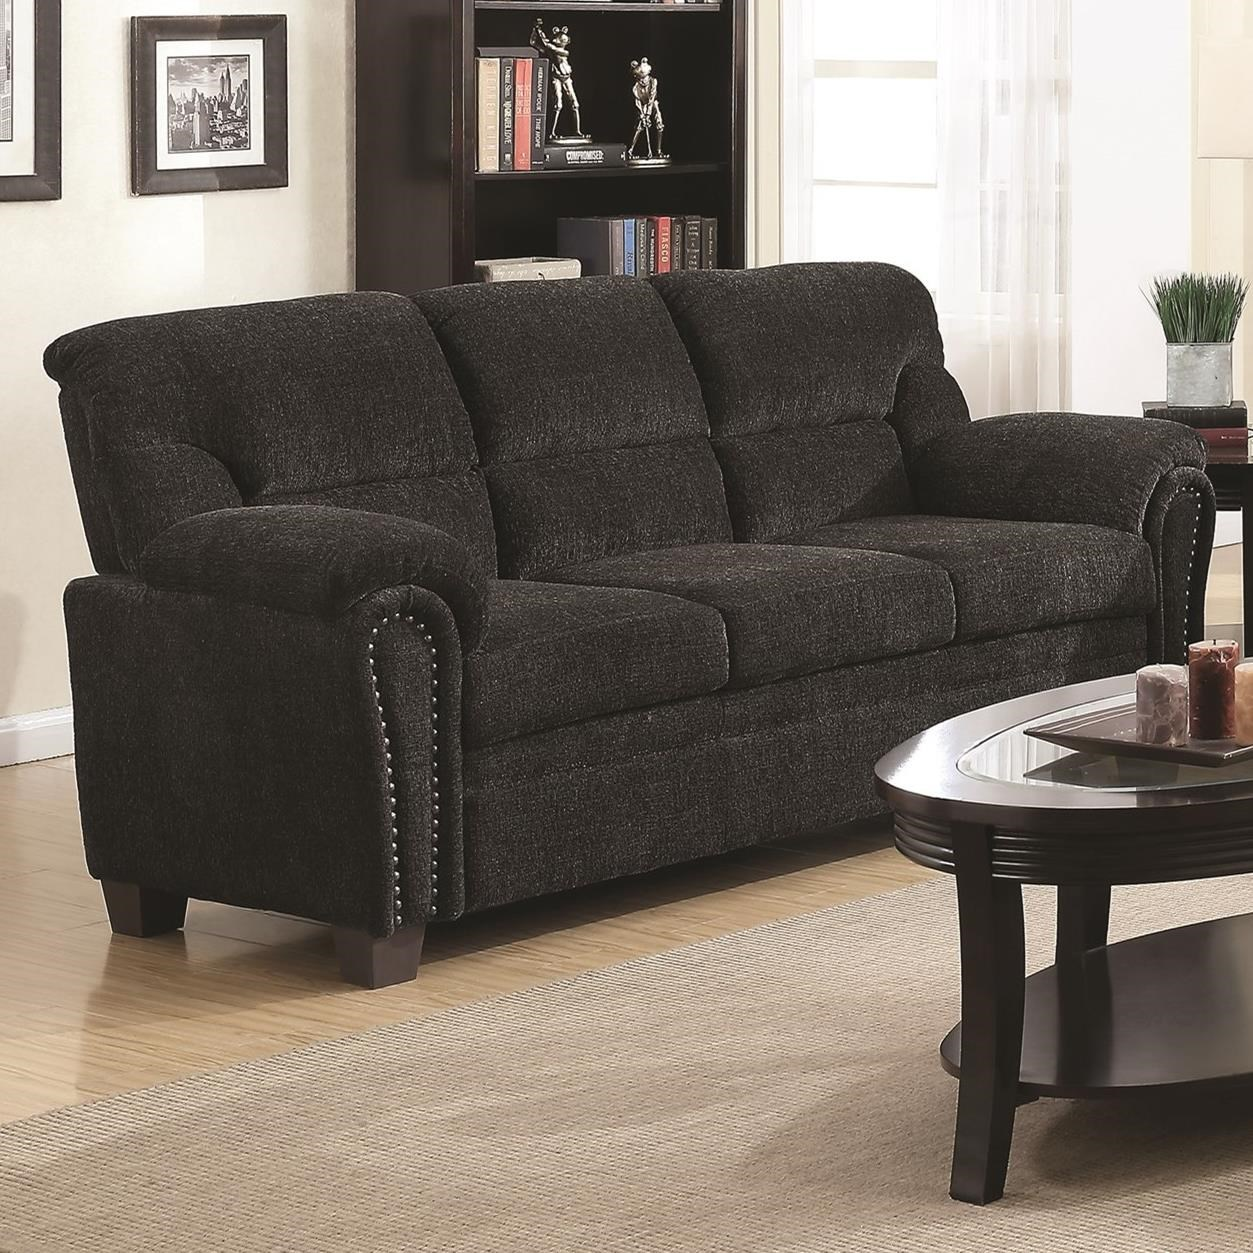 Clemintine by Coaster Sofa by Coaster at Lapeer Furniture & Mattress Center